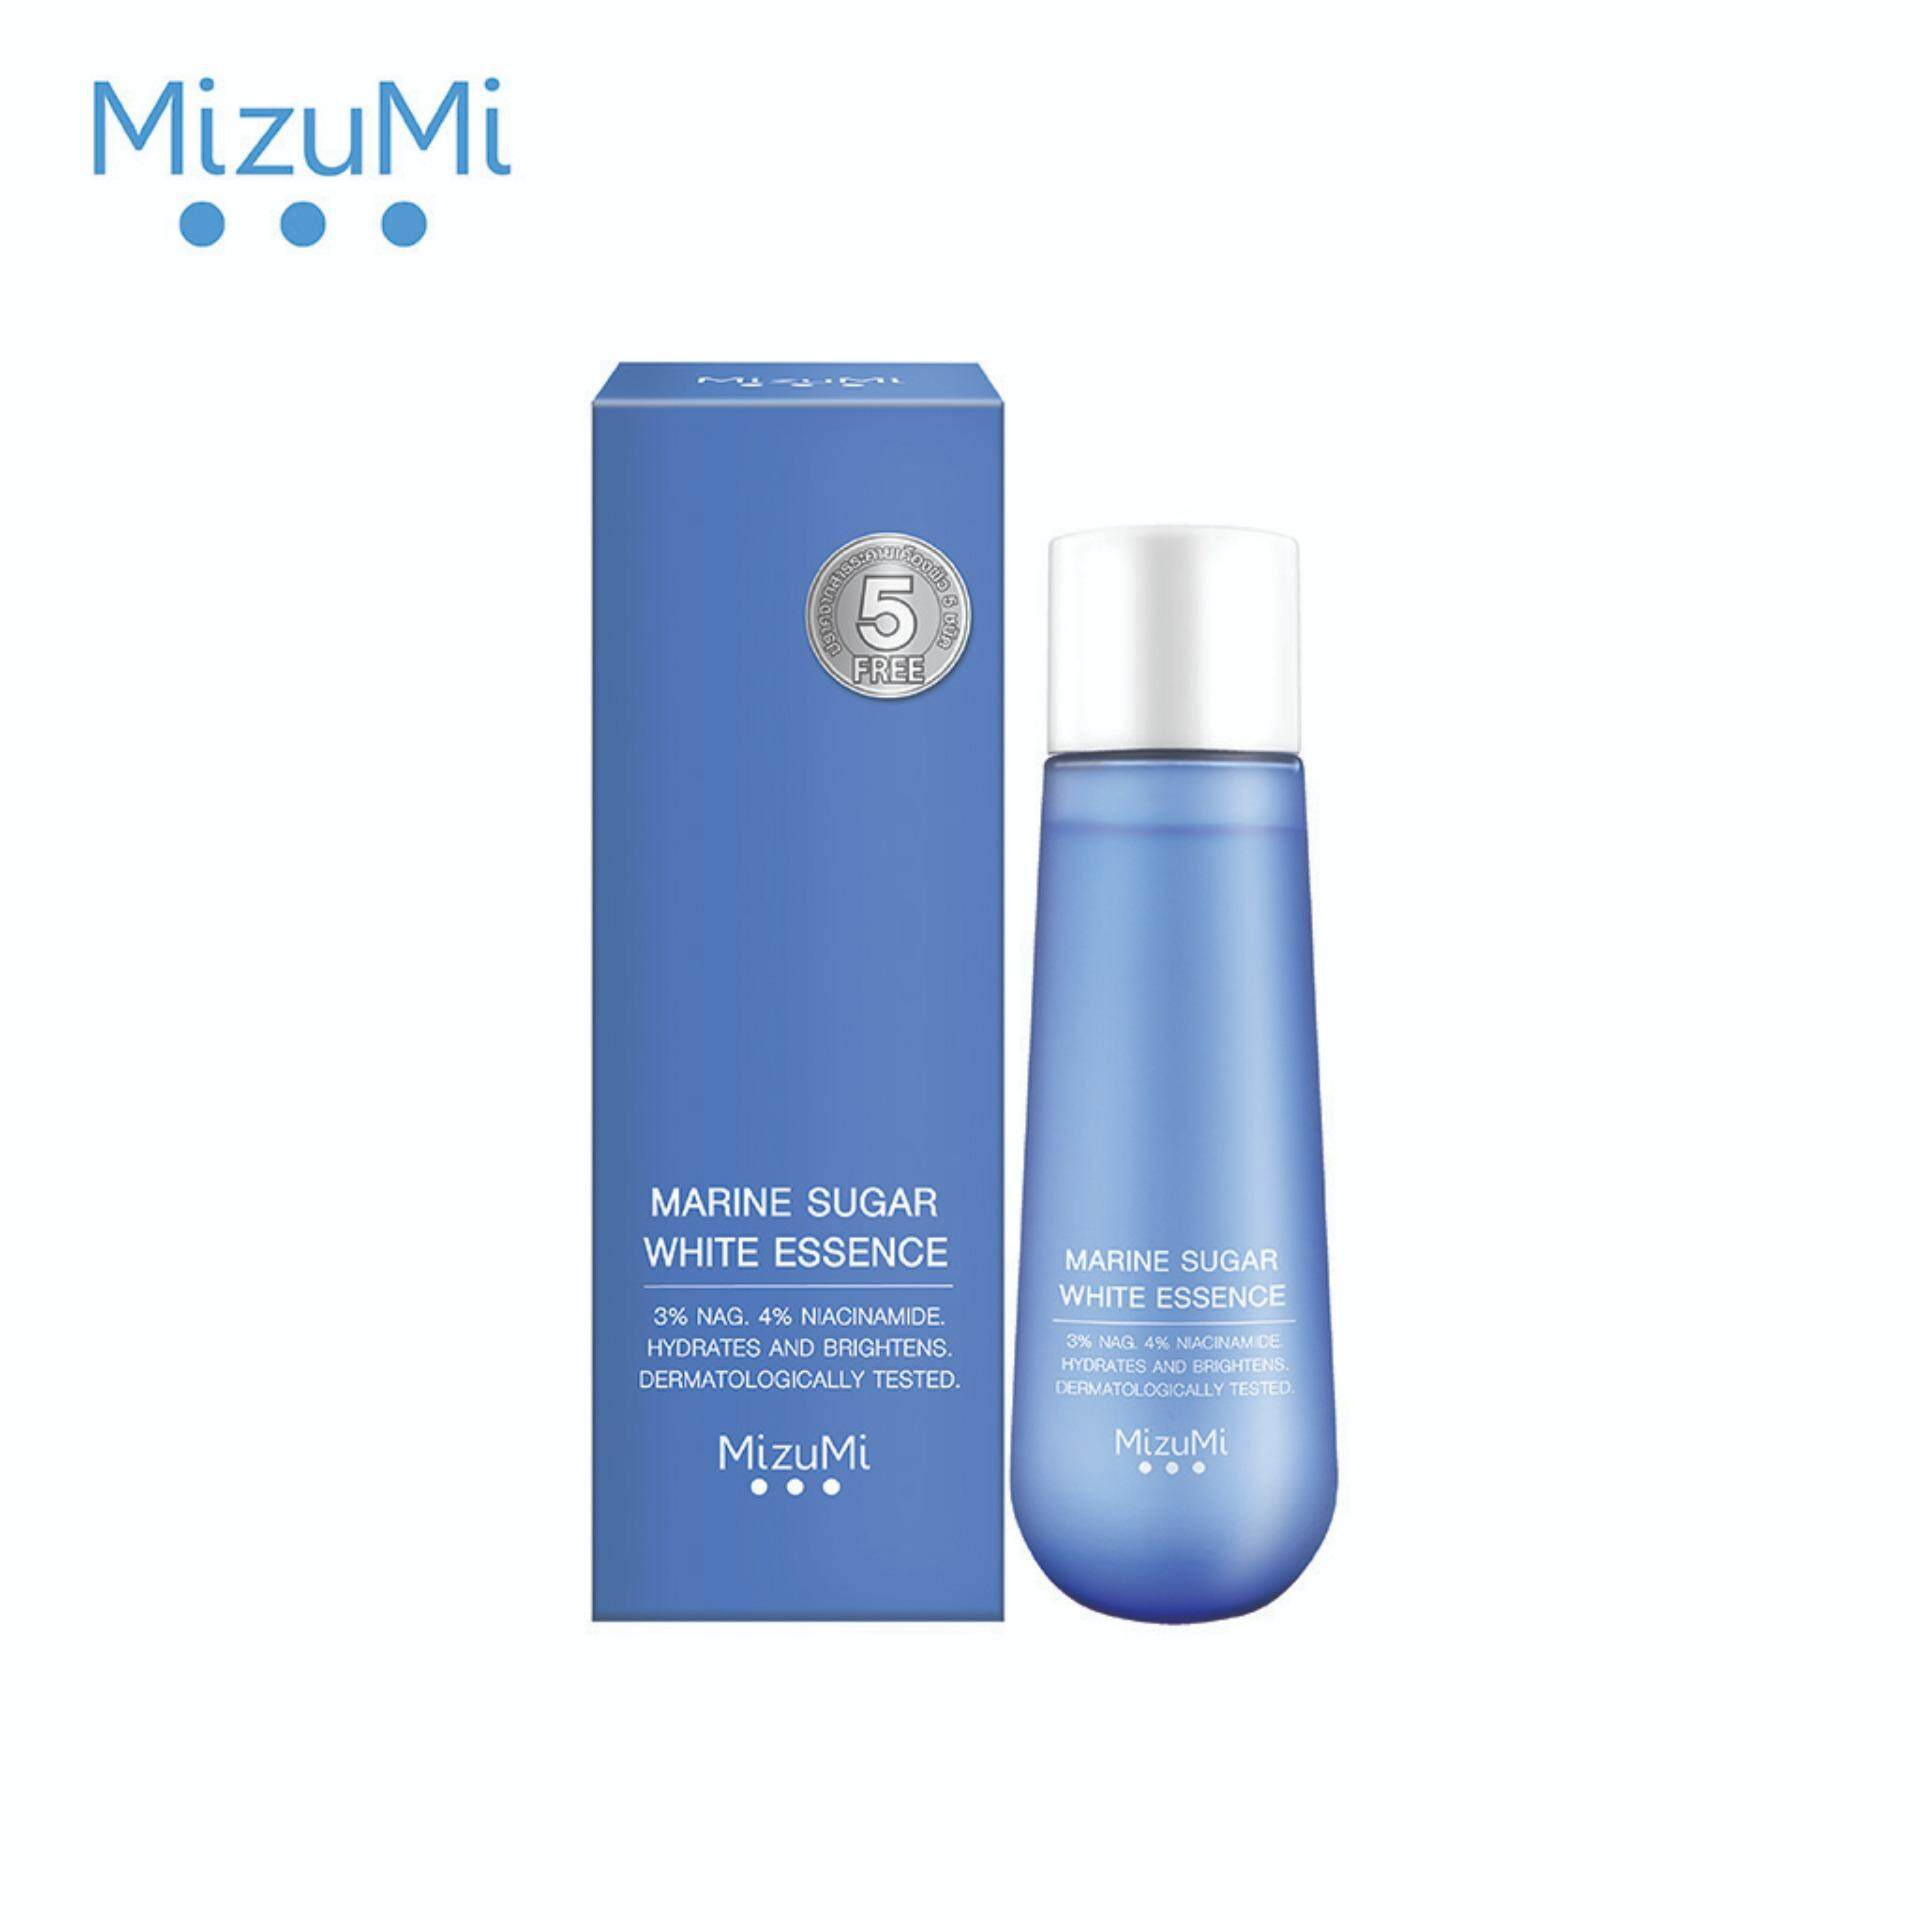 Mizumi Marine Sugar White Essence 125ml.